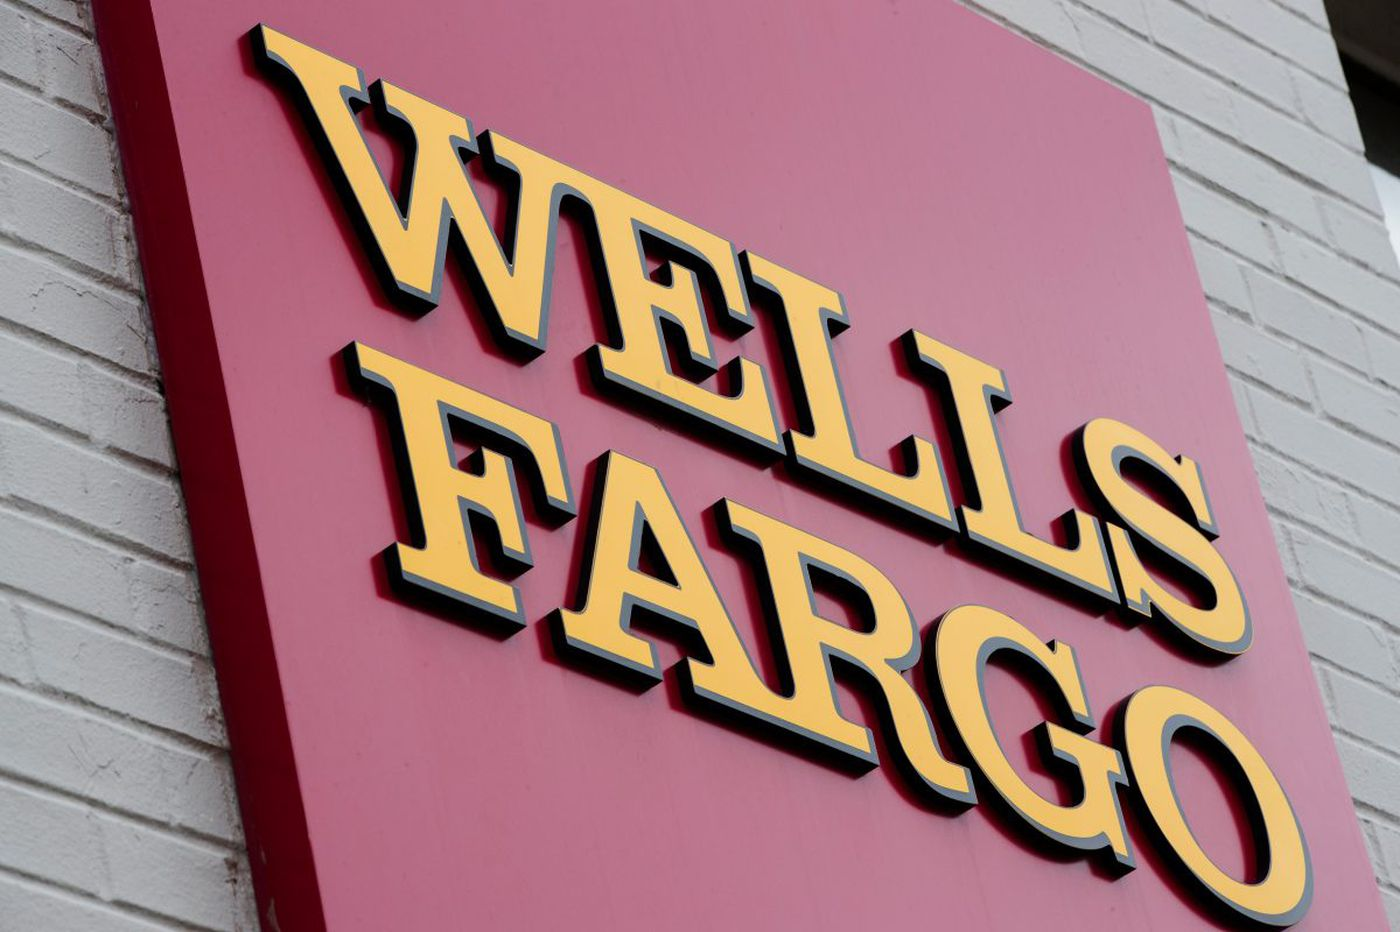 Wells Fargo accused in suit over suspected fraud